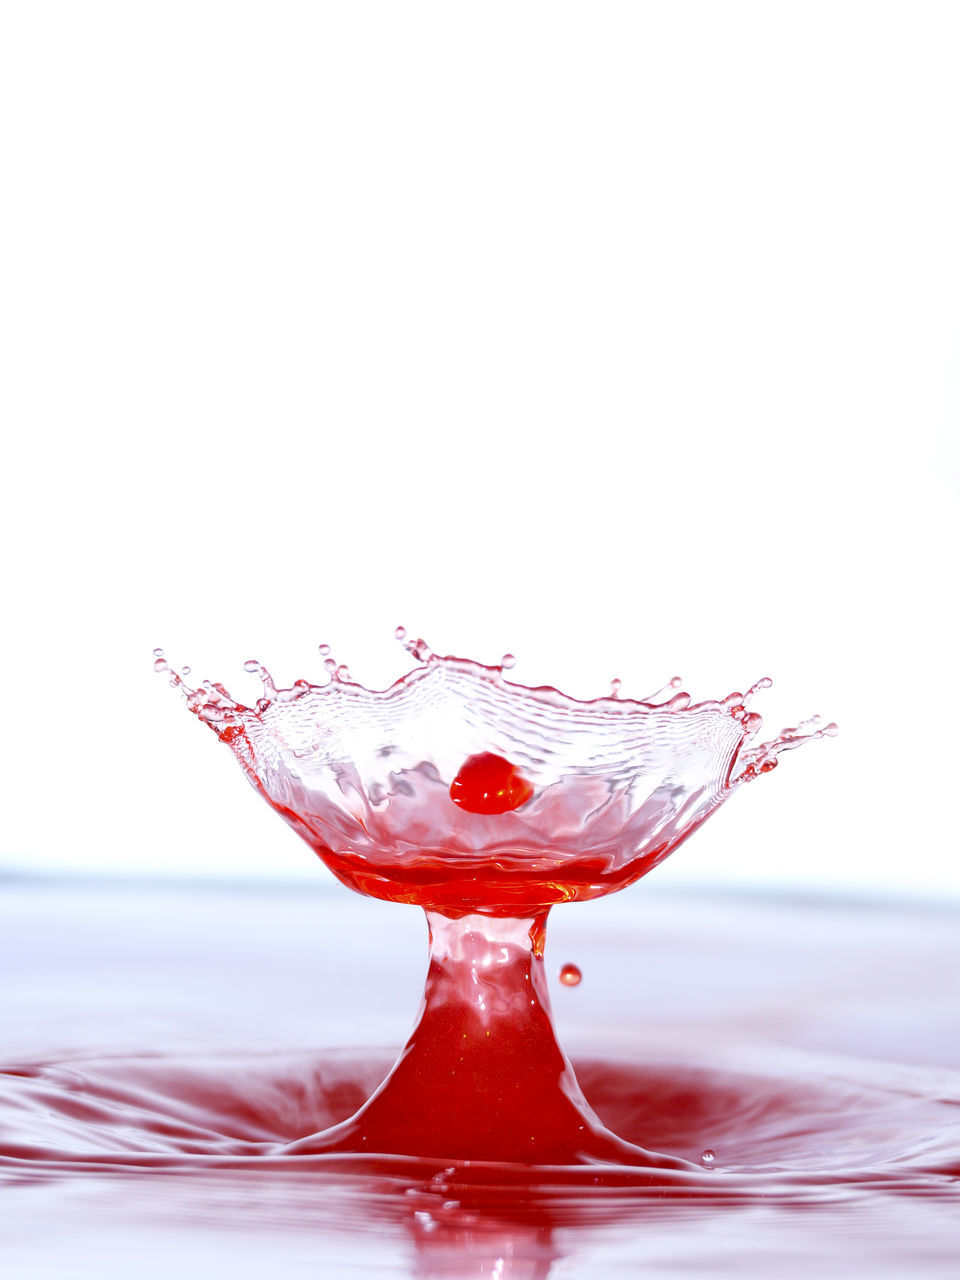 studio shot, red, white background, no people, close-up, motion, high-speed photography, water, freshness, day